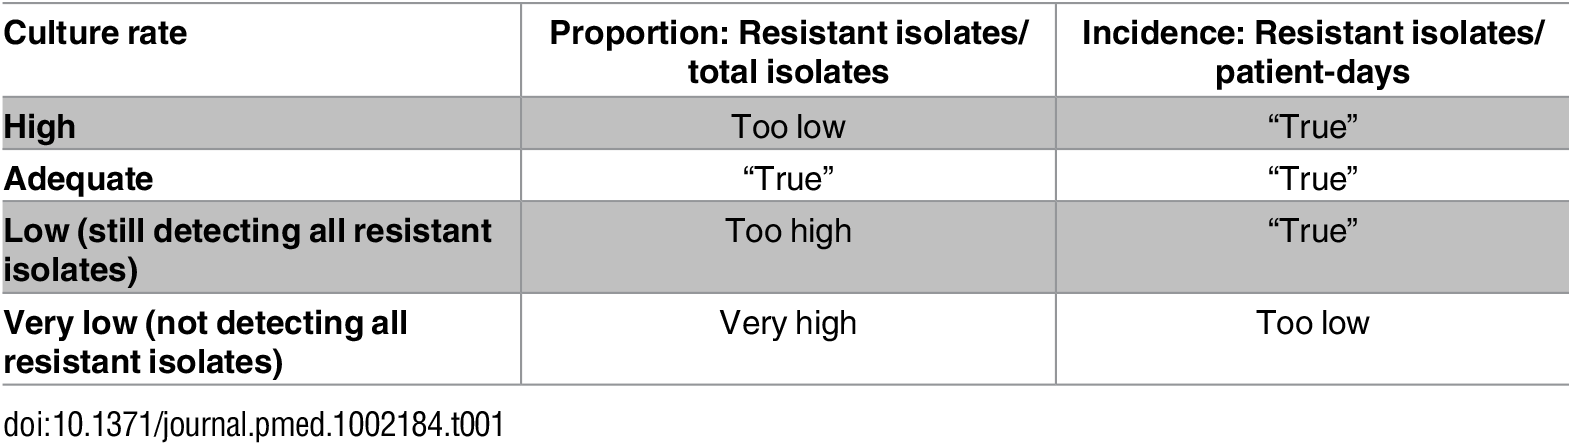 Influence of culture rate on resistance proportions and resistance rates.